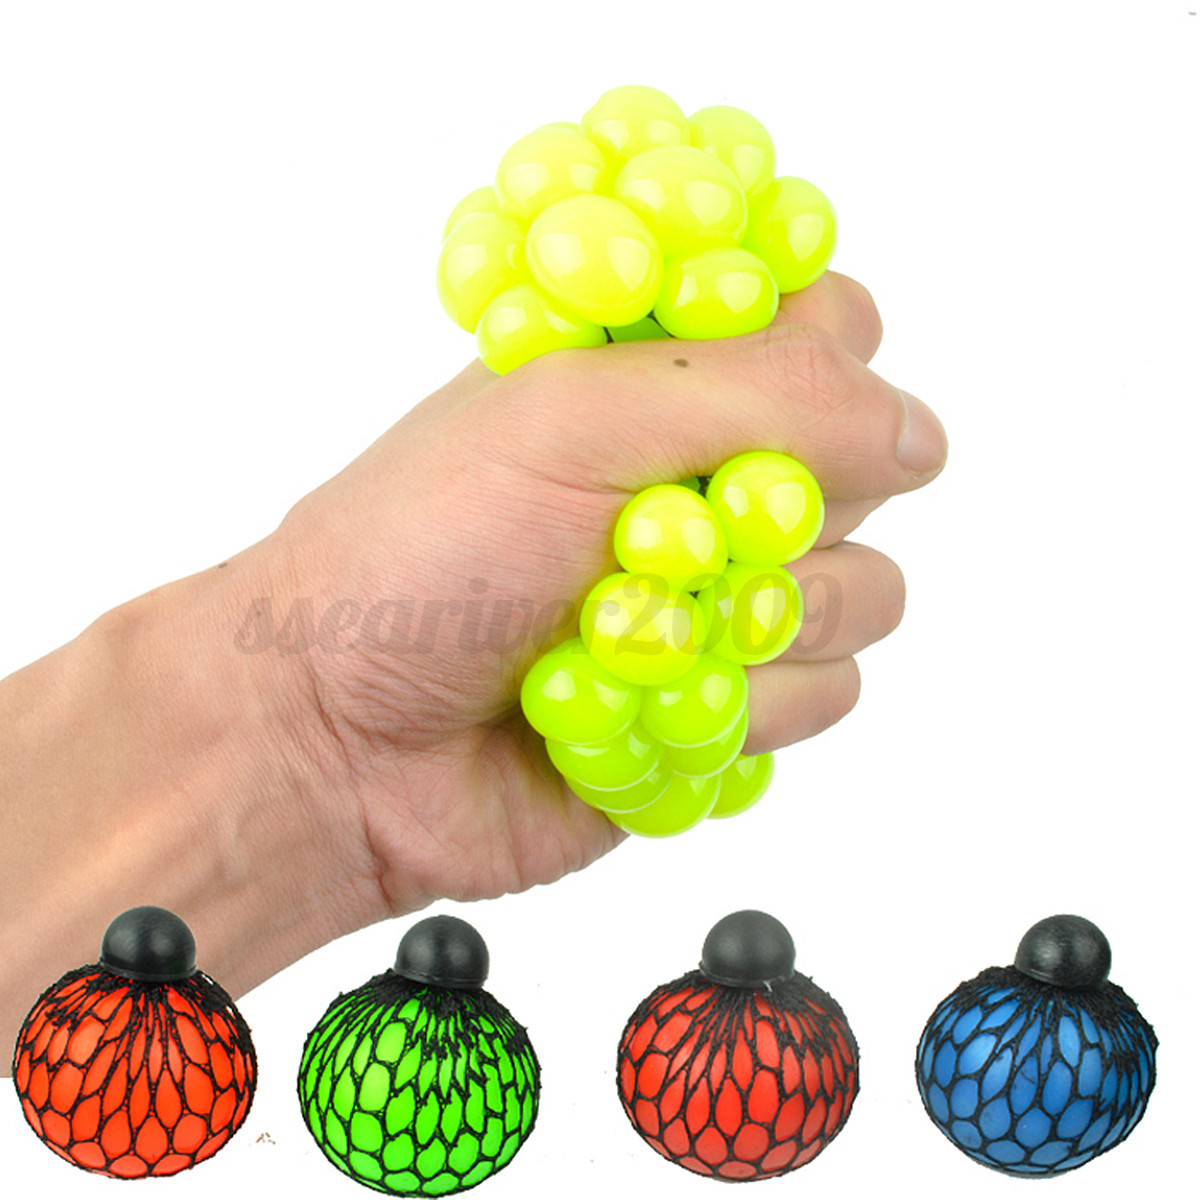 Novelty Squishy Colored Mesh Stress Ball Squeeze Stressball Party Bag Fun Gift eBay